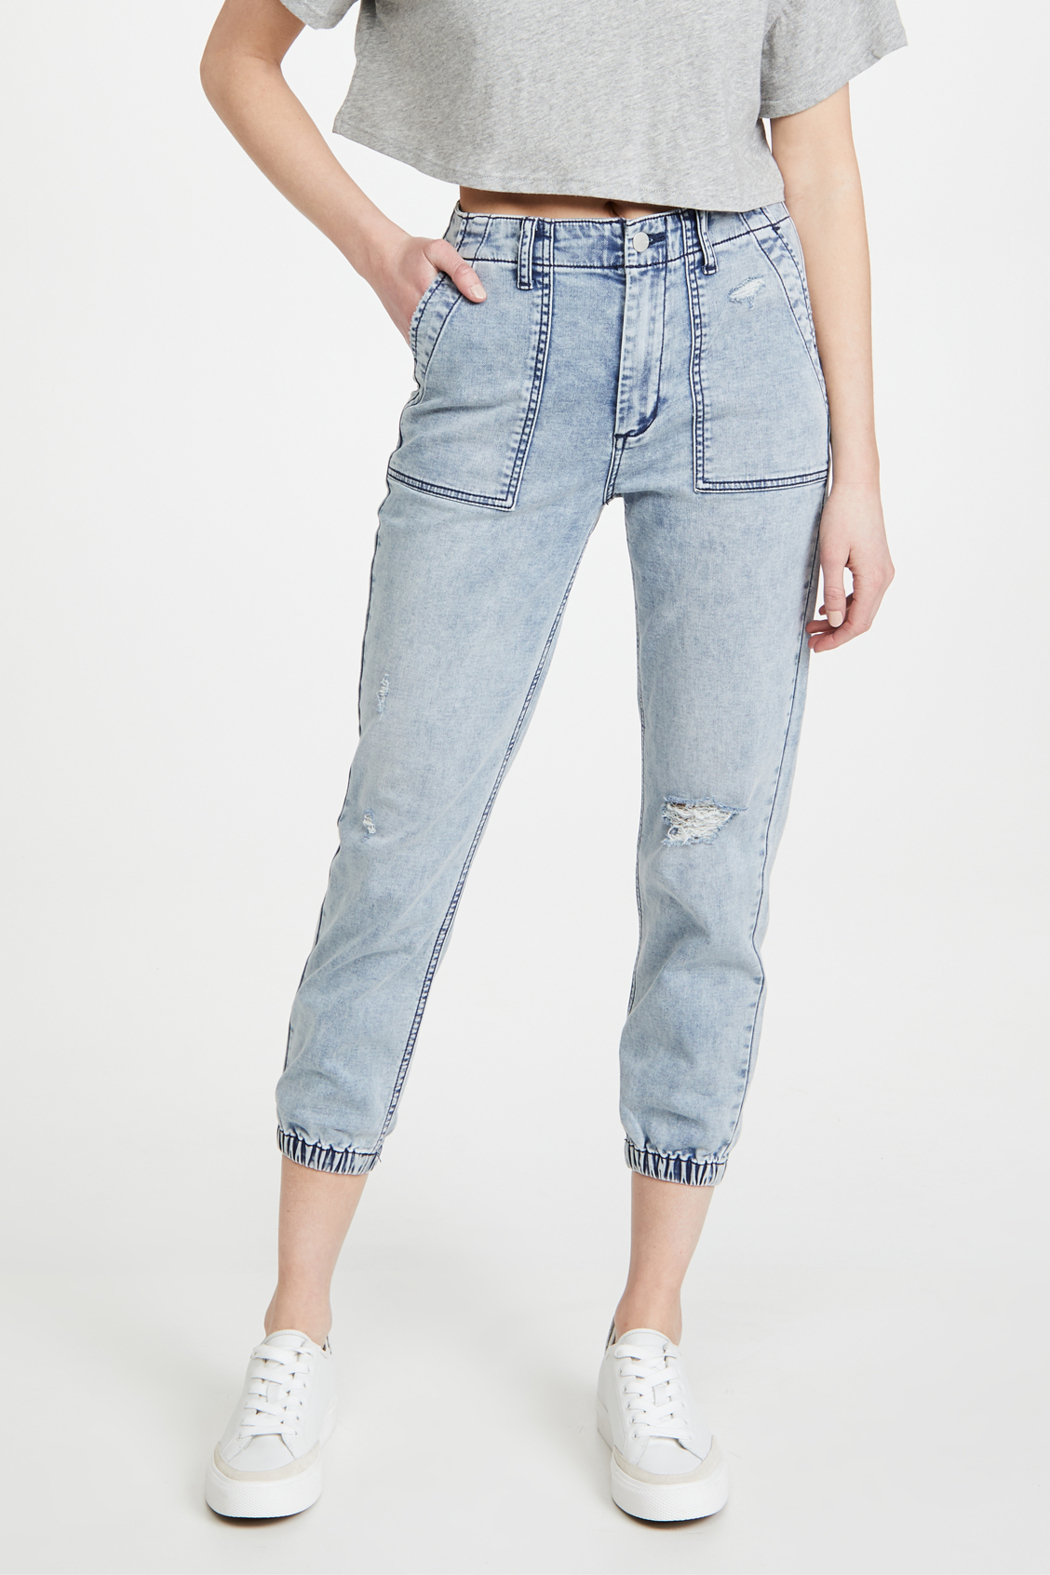 Joe's Jeans French Terry Jogger Iris - Back Cropped Image